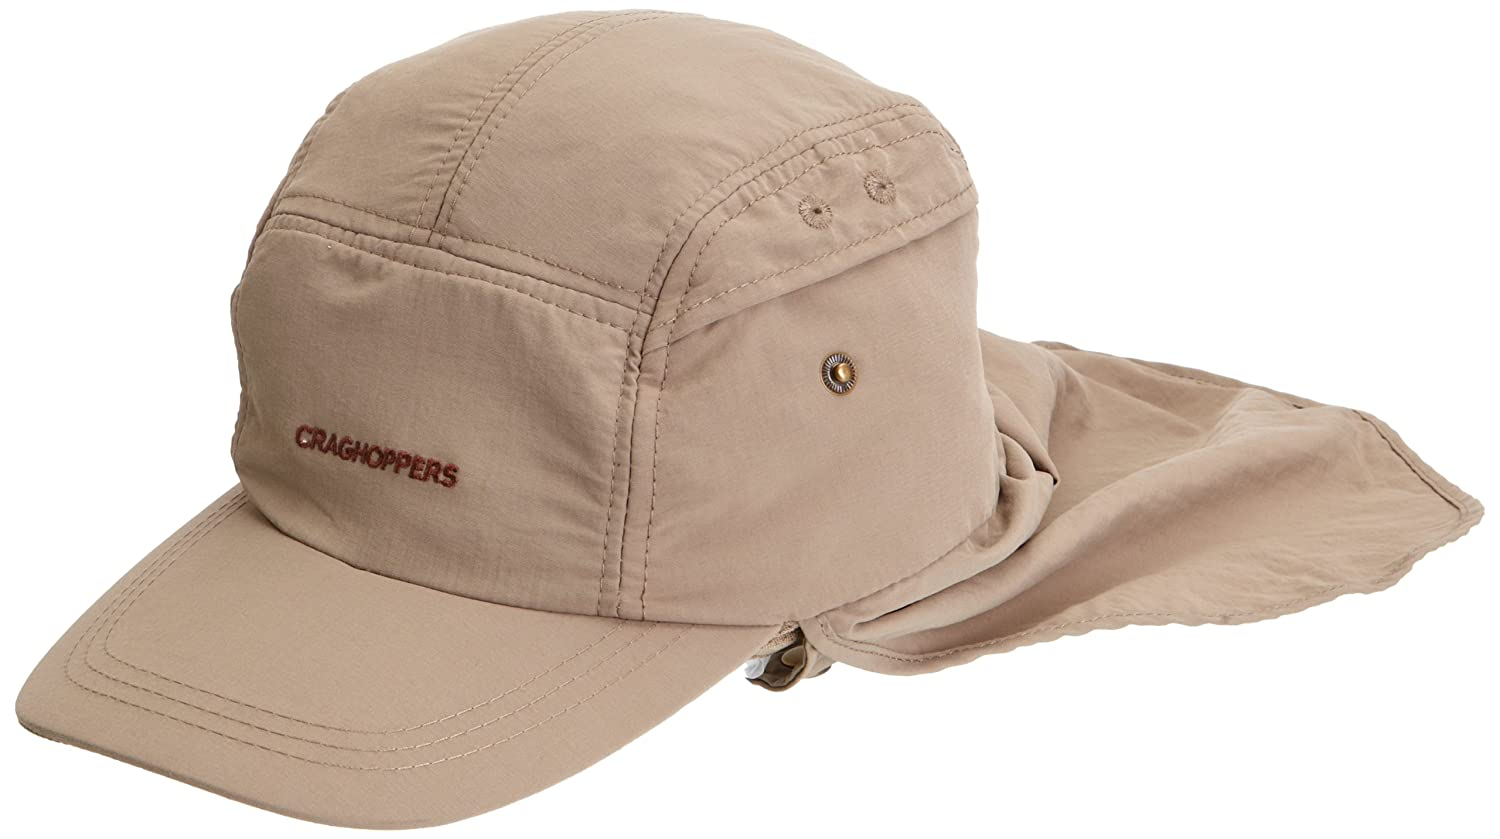 5f0af6a63cb Craghoppers Men s Nosilife Desert Hat Insect Repellent Accessories   Amazon.co.uk  Sports   Outdoors